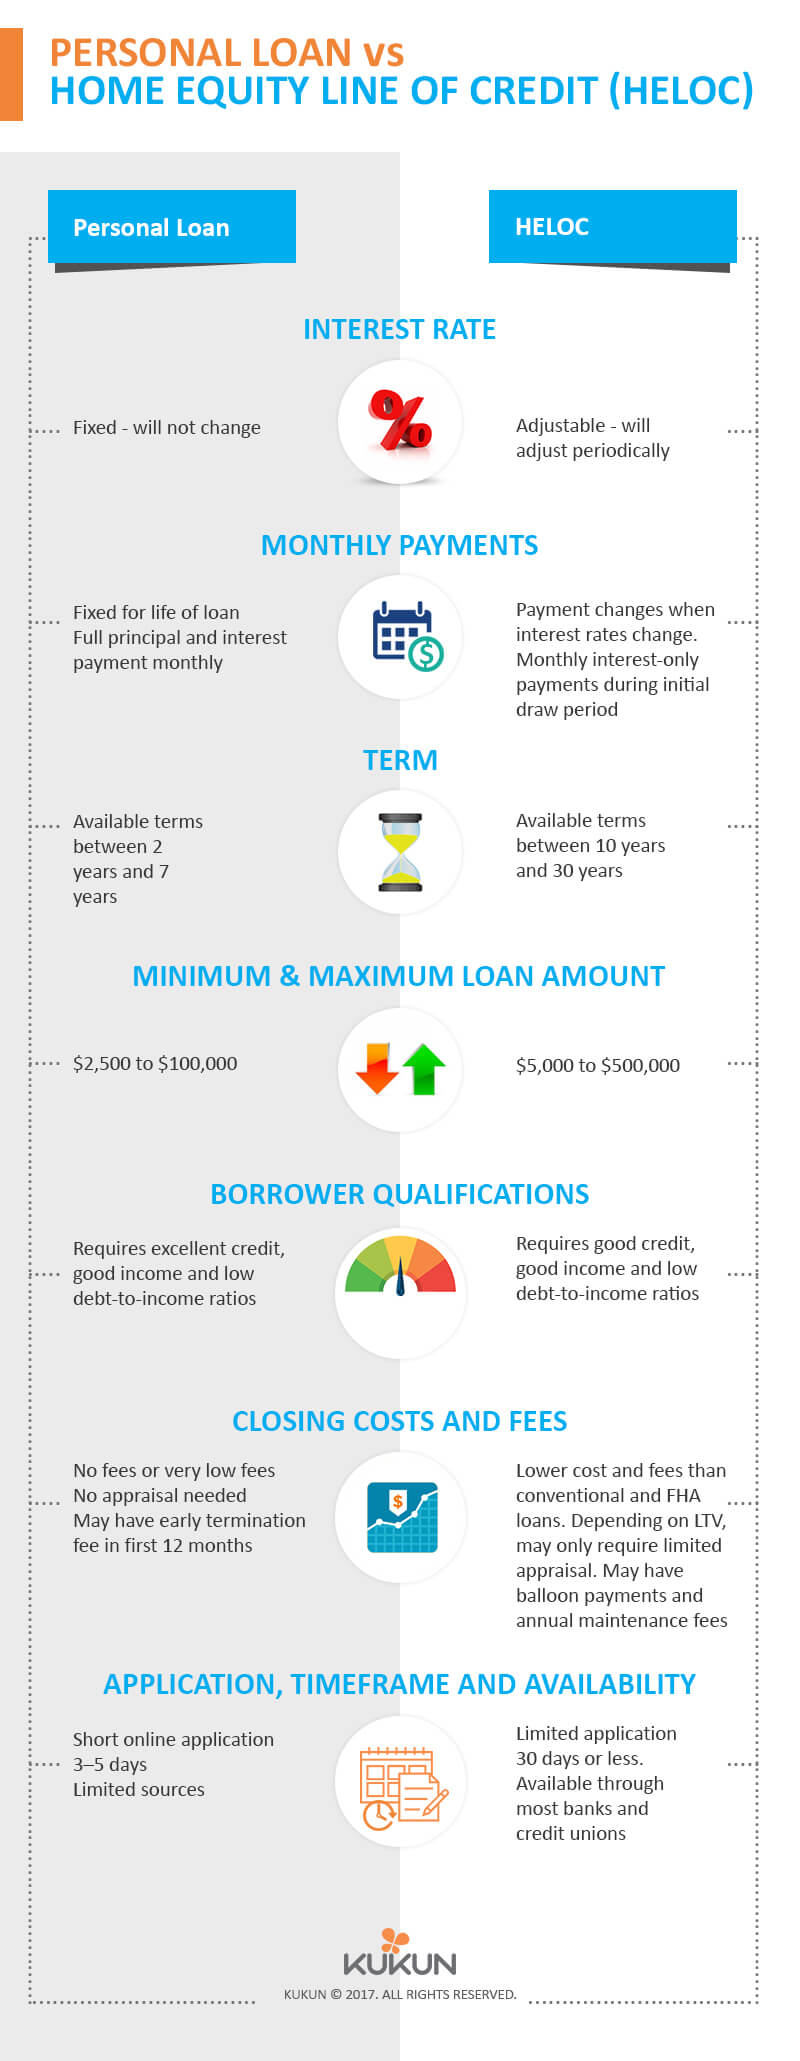 Personal Loan Vs Home Equity Line of Credit (HELOC)